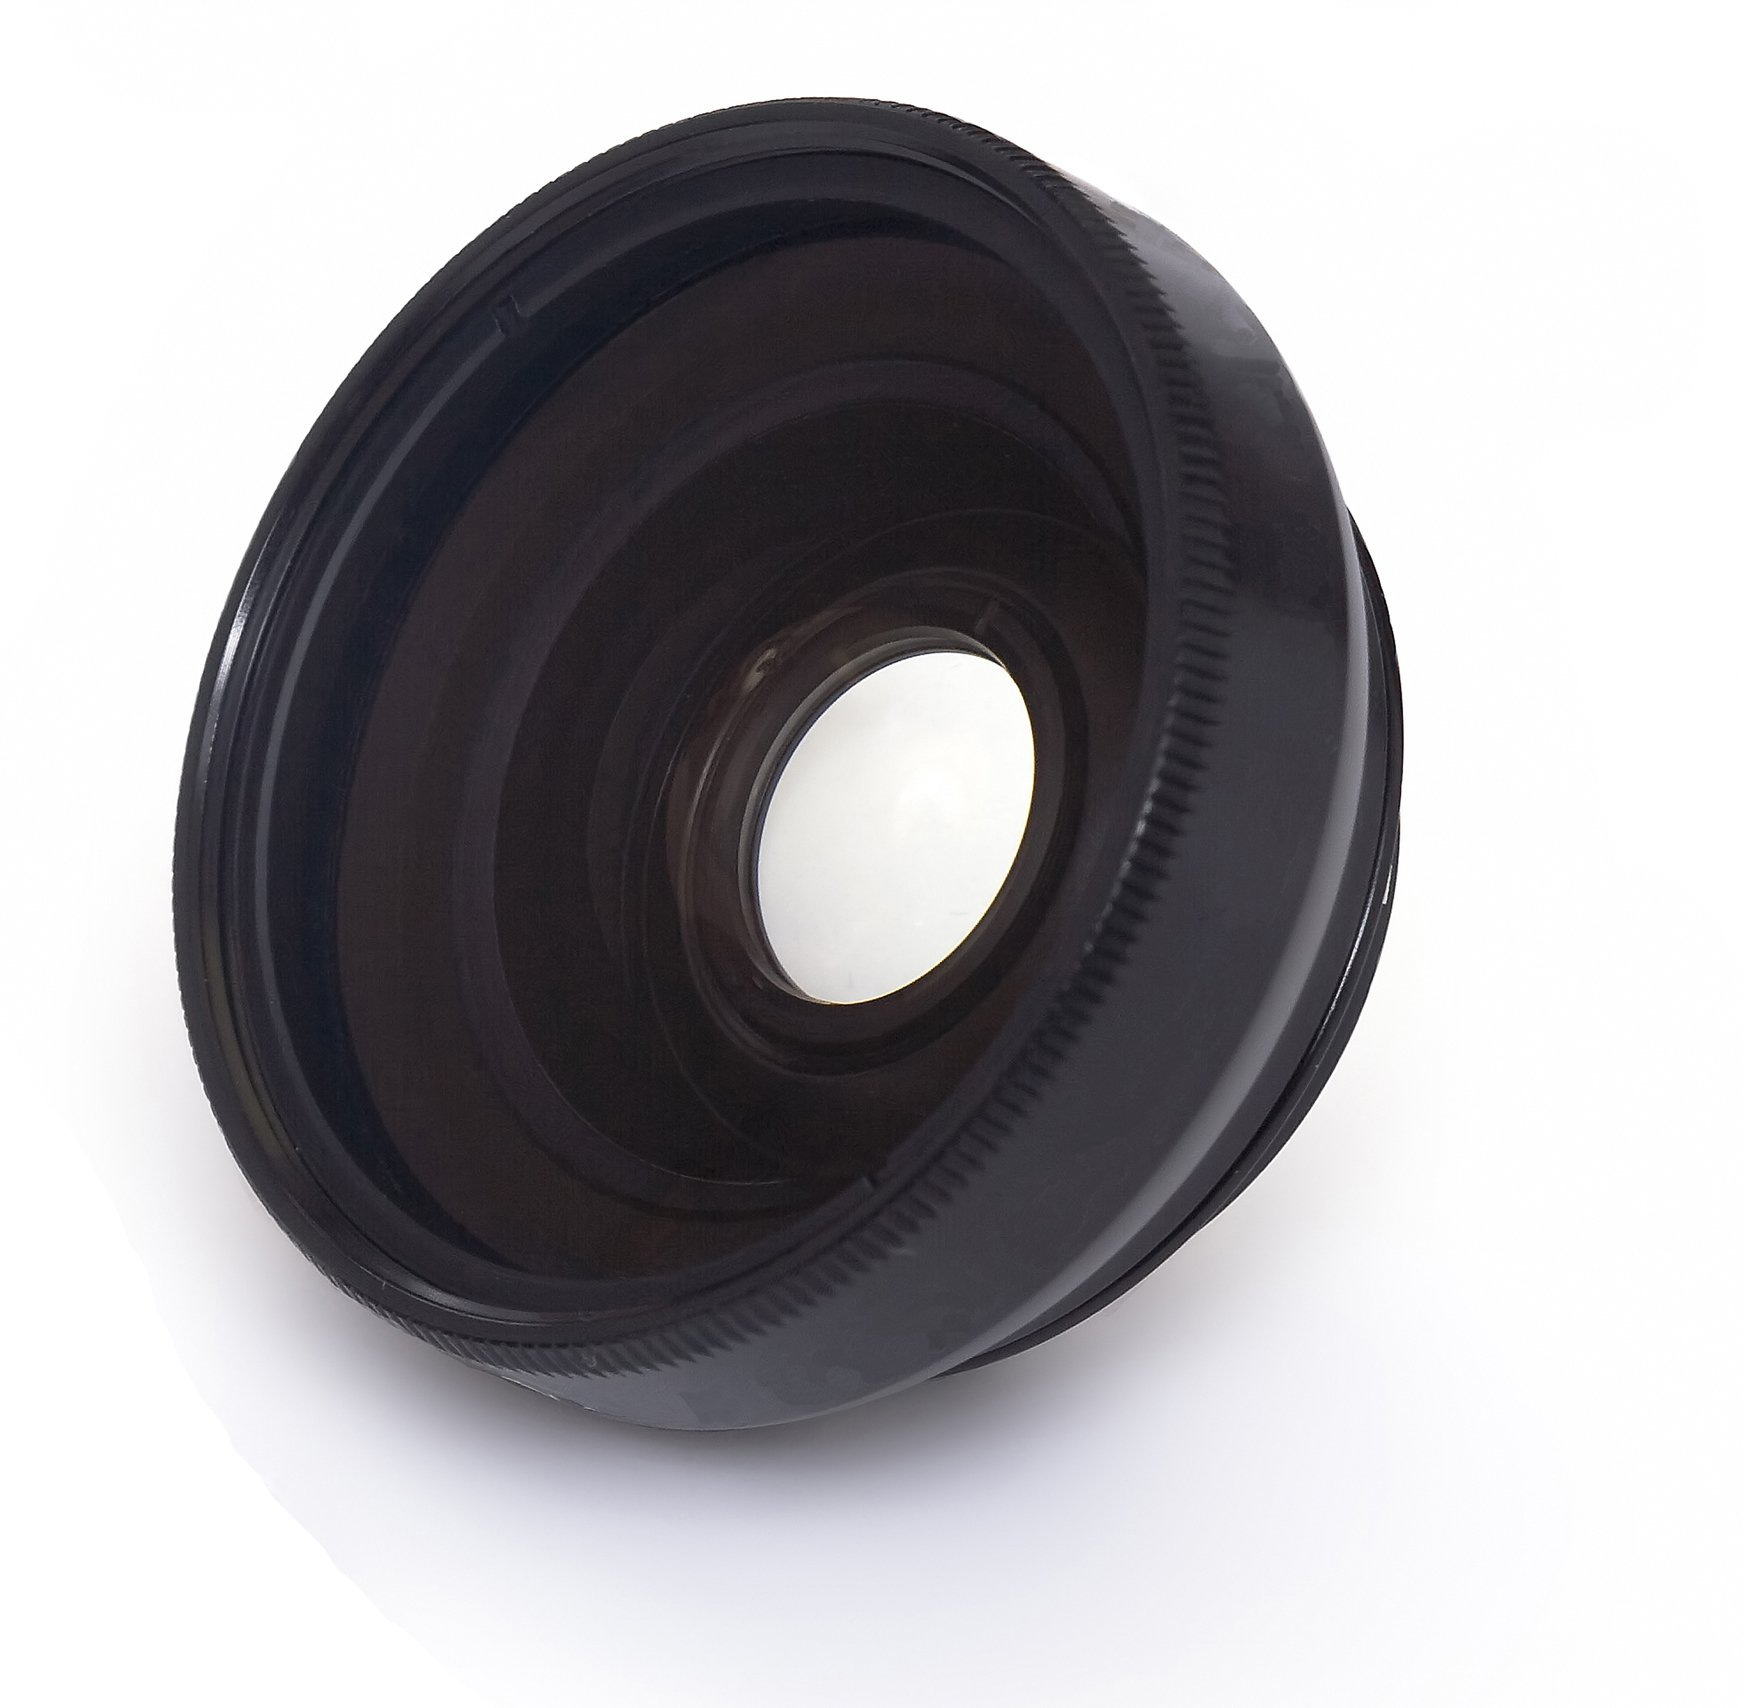 0.45x High Grade (Black) Wide Angle Conversion Lens (46mm) For Sony HDR-PJ540 by Digital Nc